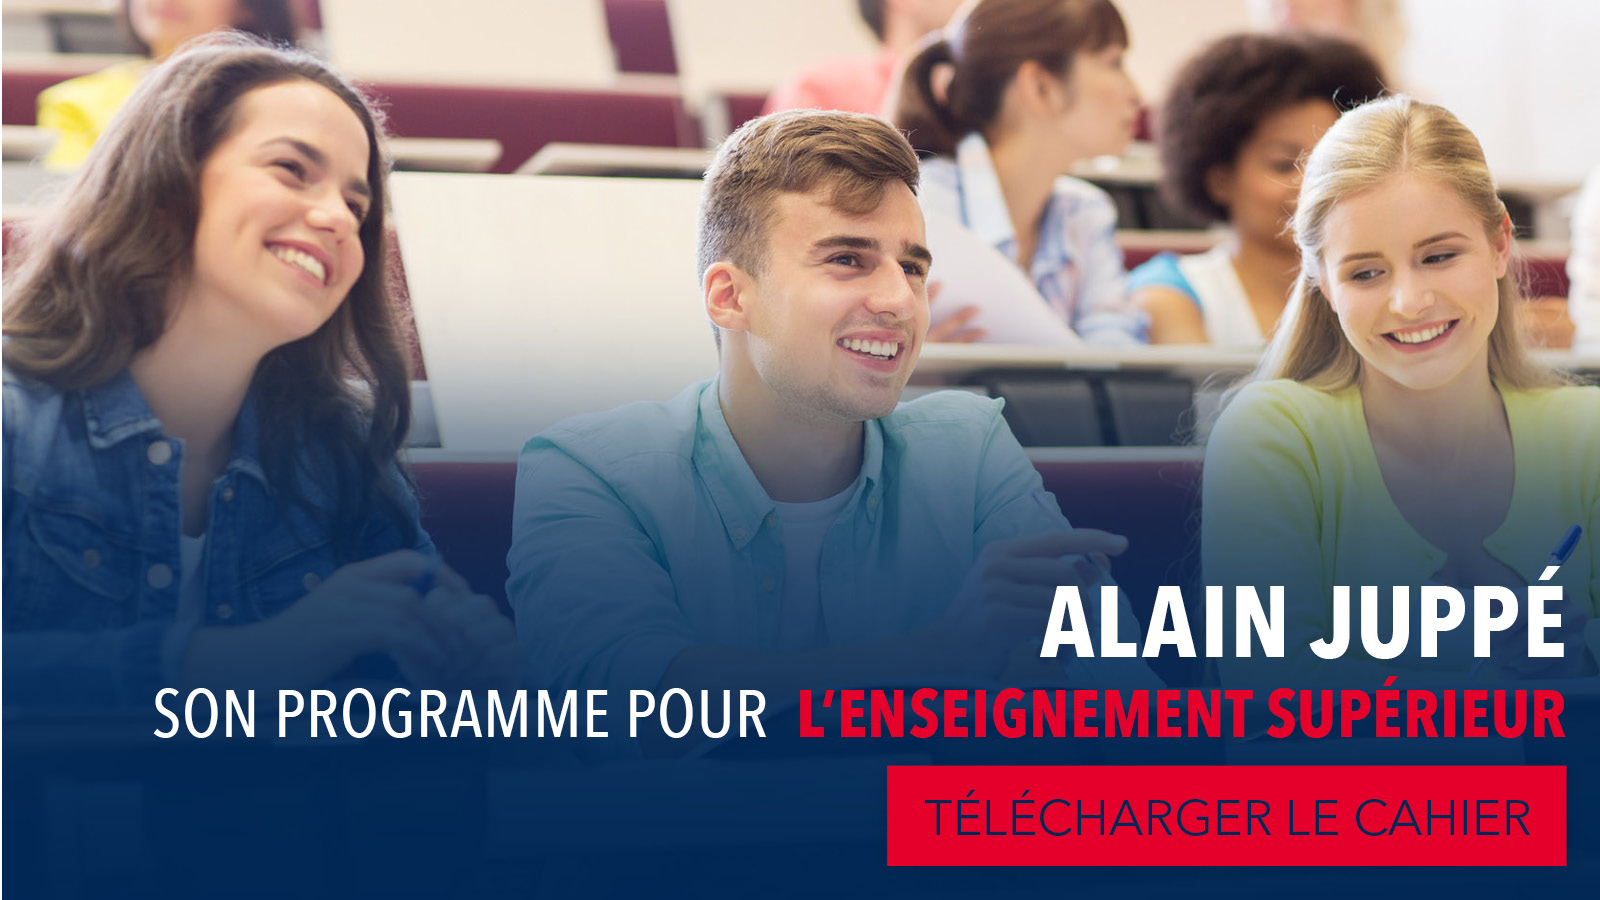 Telecharger_cahier_enseignement_sup3.jpg